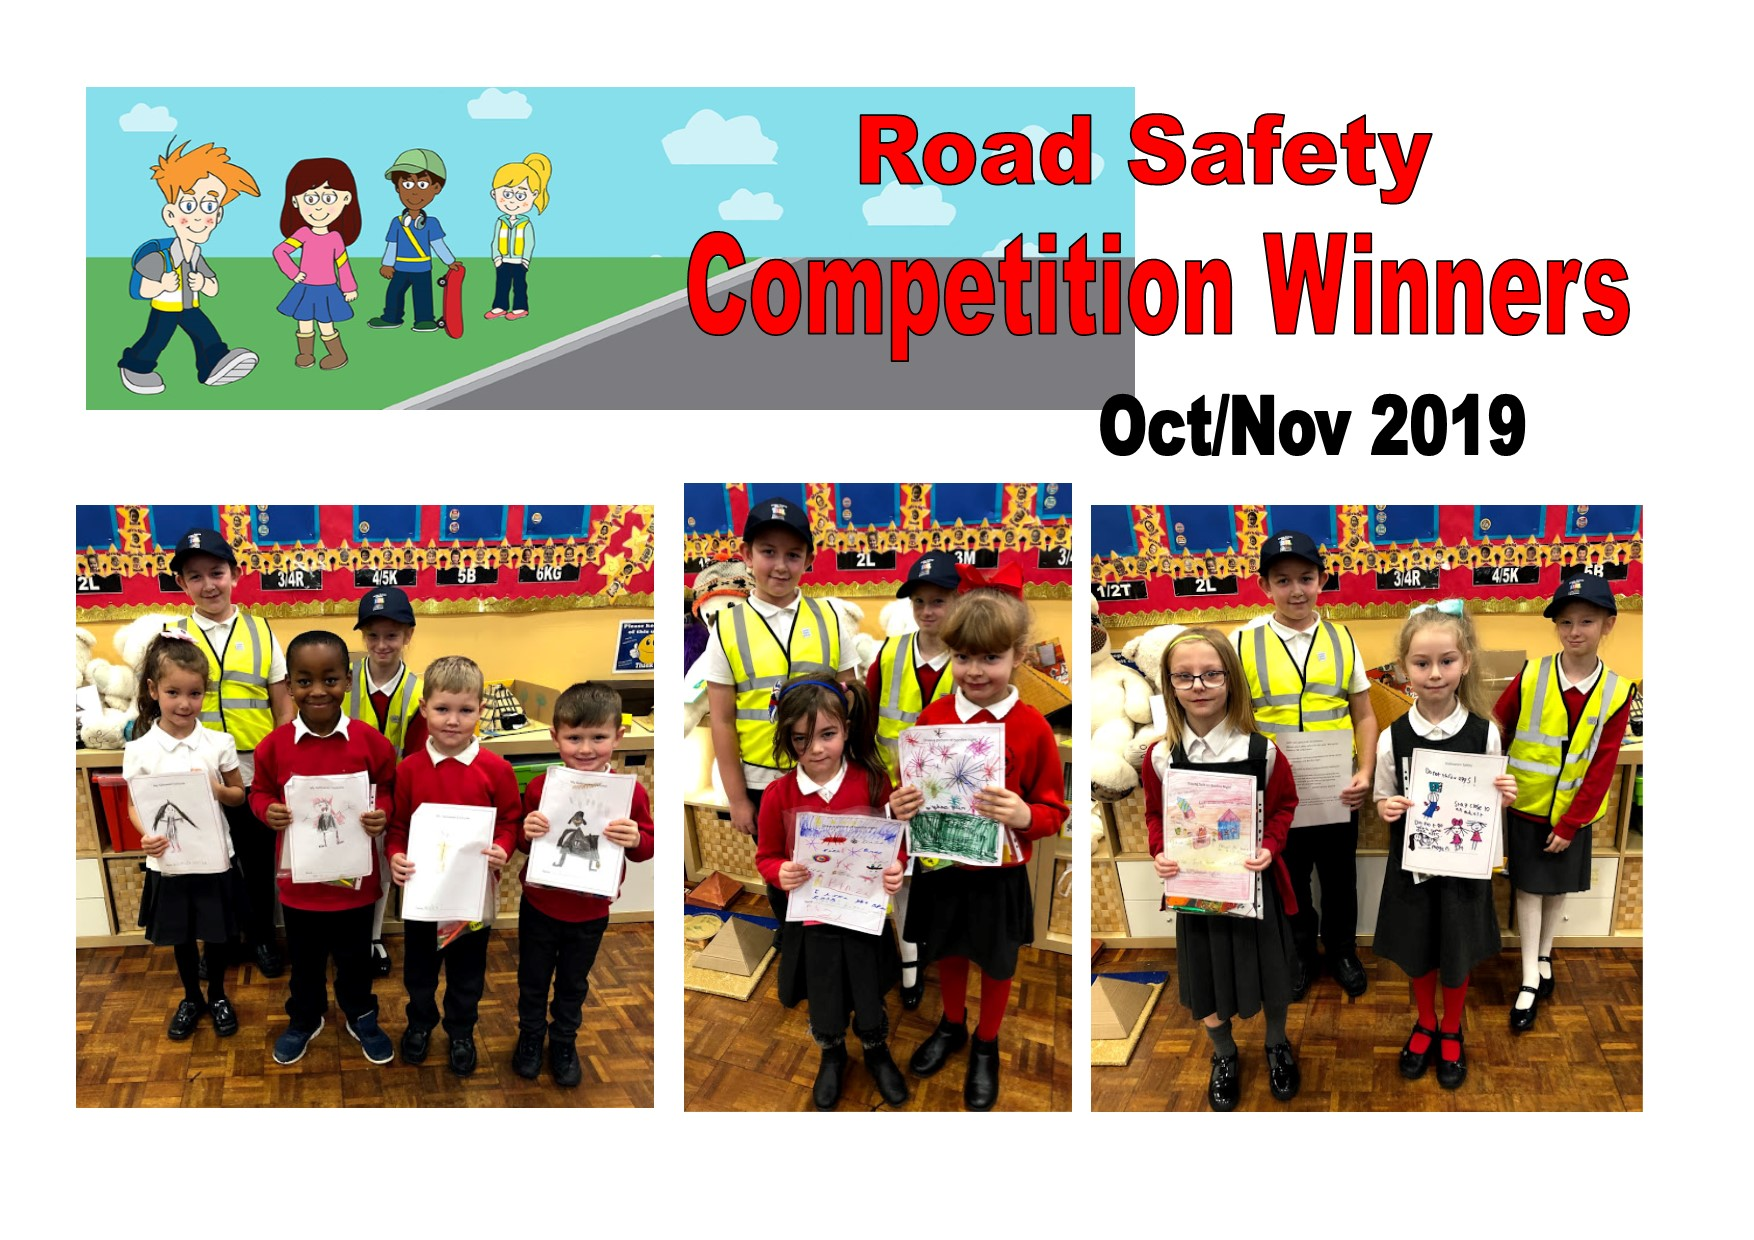 Competition winners Oct Nov 2019 - Copy.jpg